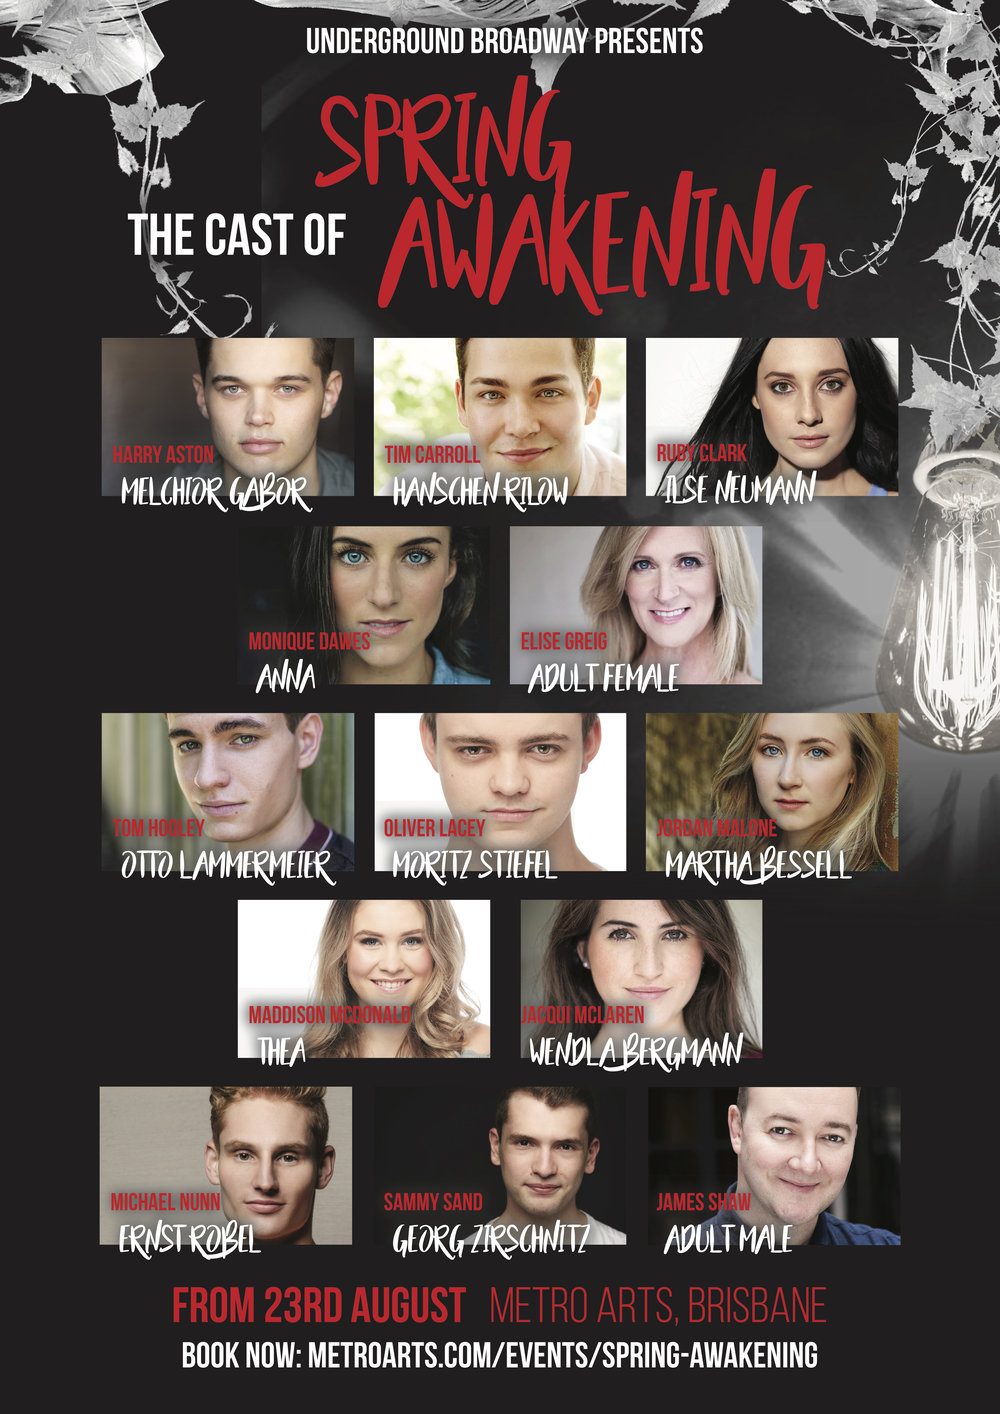 - Spring Awakening is a Tony Award-winning rock musical with music by Duncan Sheik and book and lyrics by Steven Sater. The musical is based on the controversial 1891 play of the same title by Frank Wedekind. Set in late-nineteenth century Germany, it concerns teenagers who are discovering the inner and outer tumult of Human sexuality. The characters inner thoughts are told through an alternative rock score.Underground Broadway is thrilled to be bringing this ground-breaking piece to Brisbane in August 2018, transforming the Sue Benner theatre into a theatrical experience unlike anything that's ever been seen in Queensland.